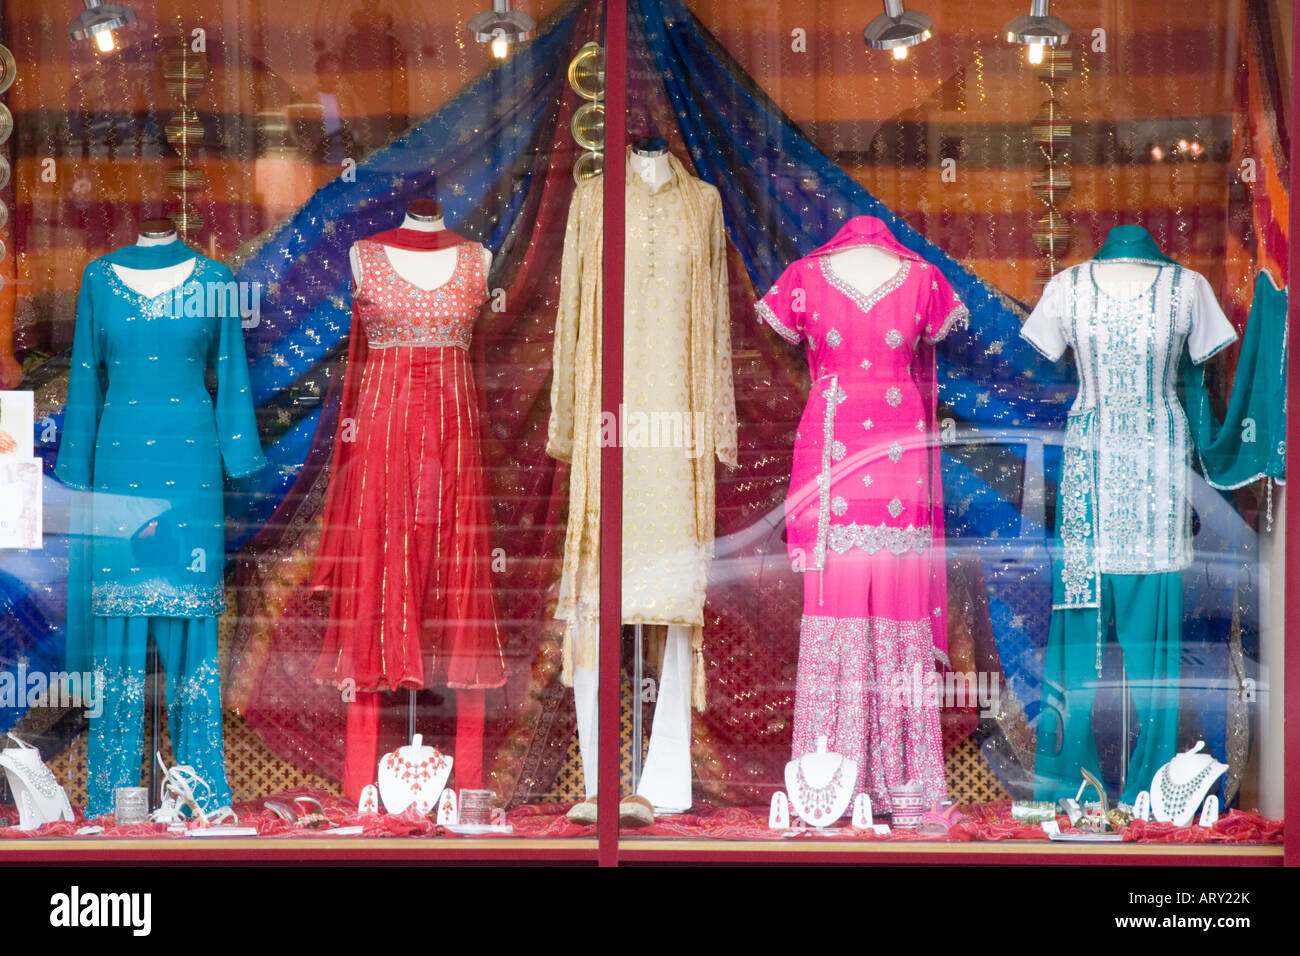 8ee352bb2f Indian clothes for sale in a shop window display Stock Photo ...